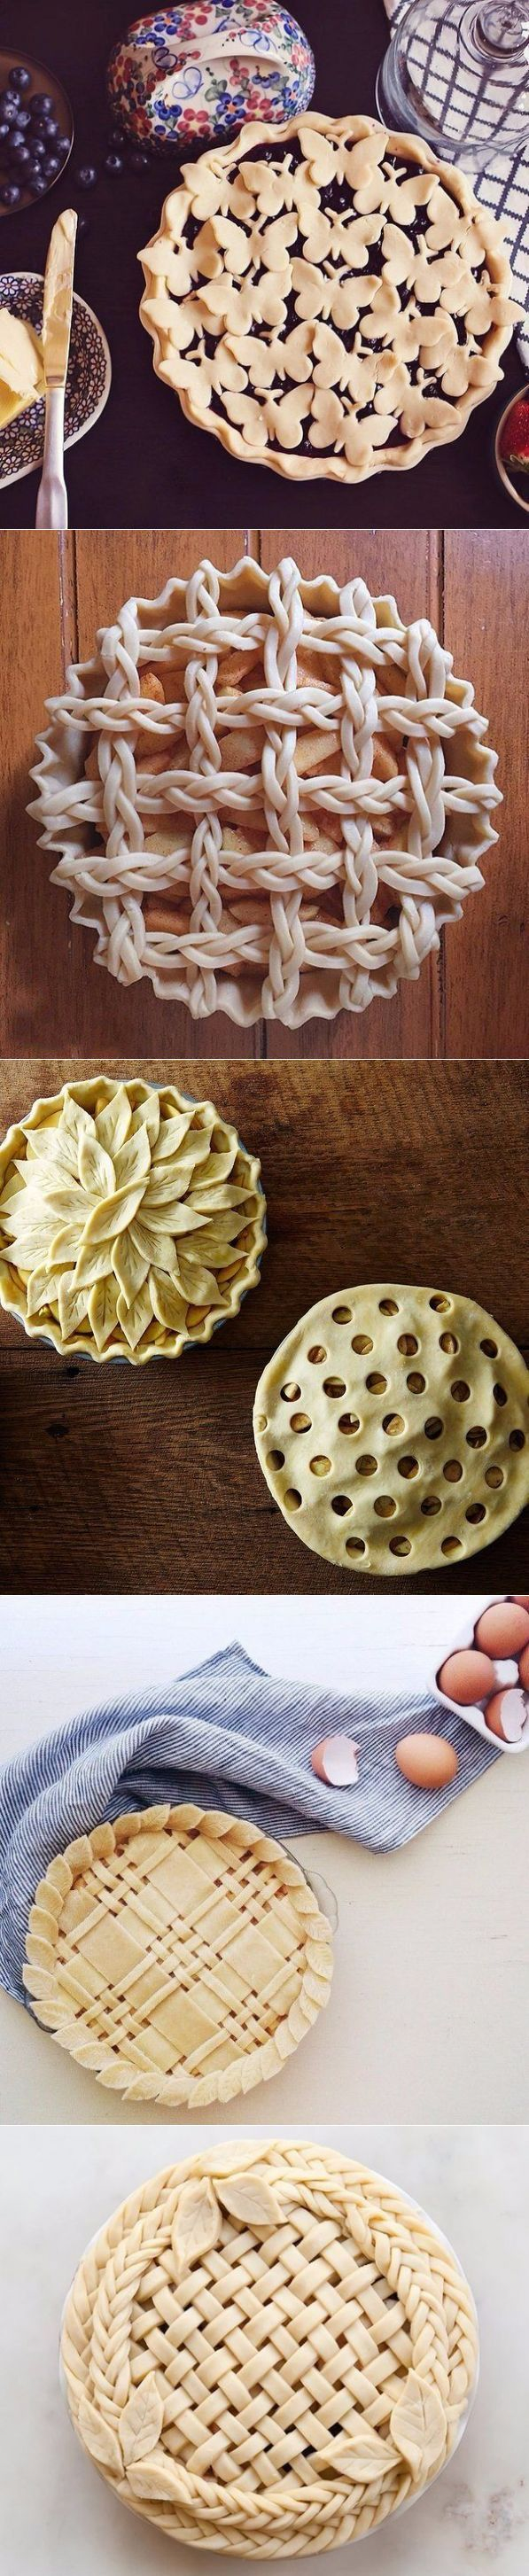 Gorgeous pies!